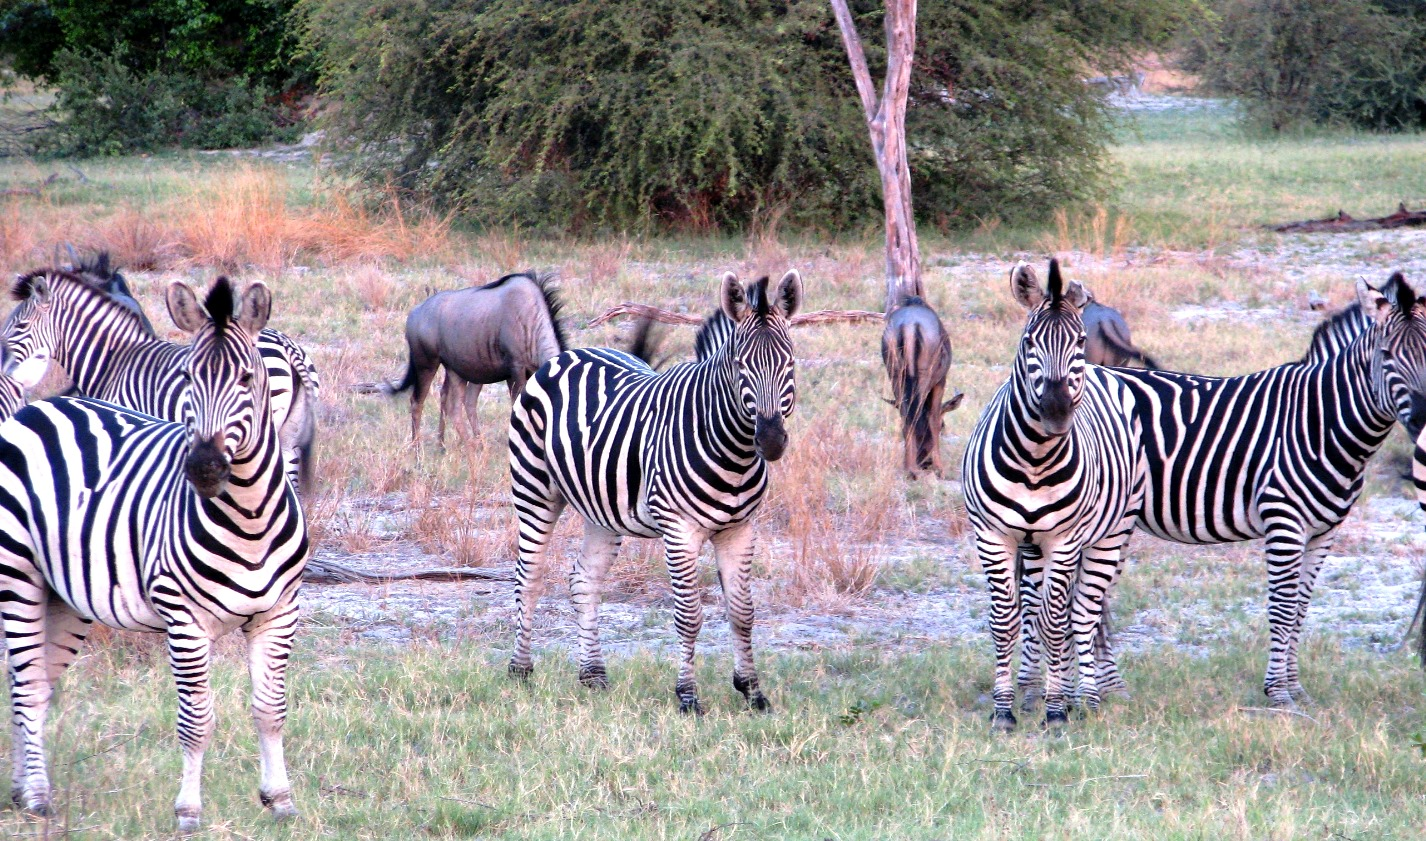 Zebra and wildebeest other savanna grazers from the ground look very different from the air.